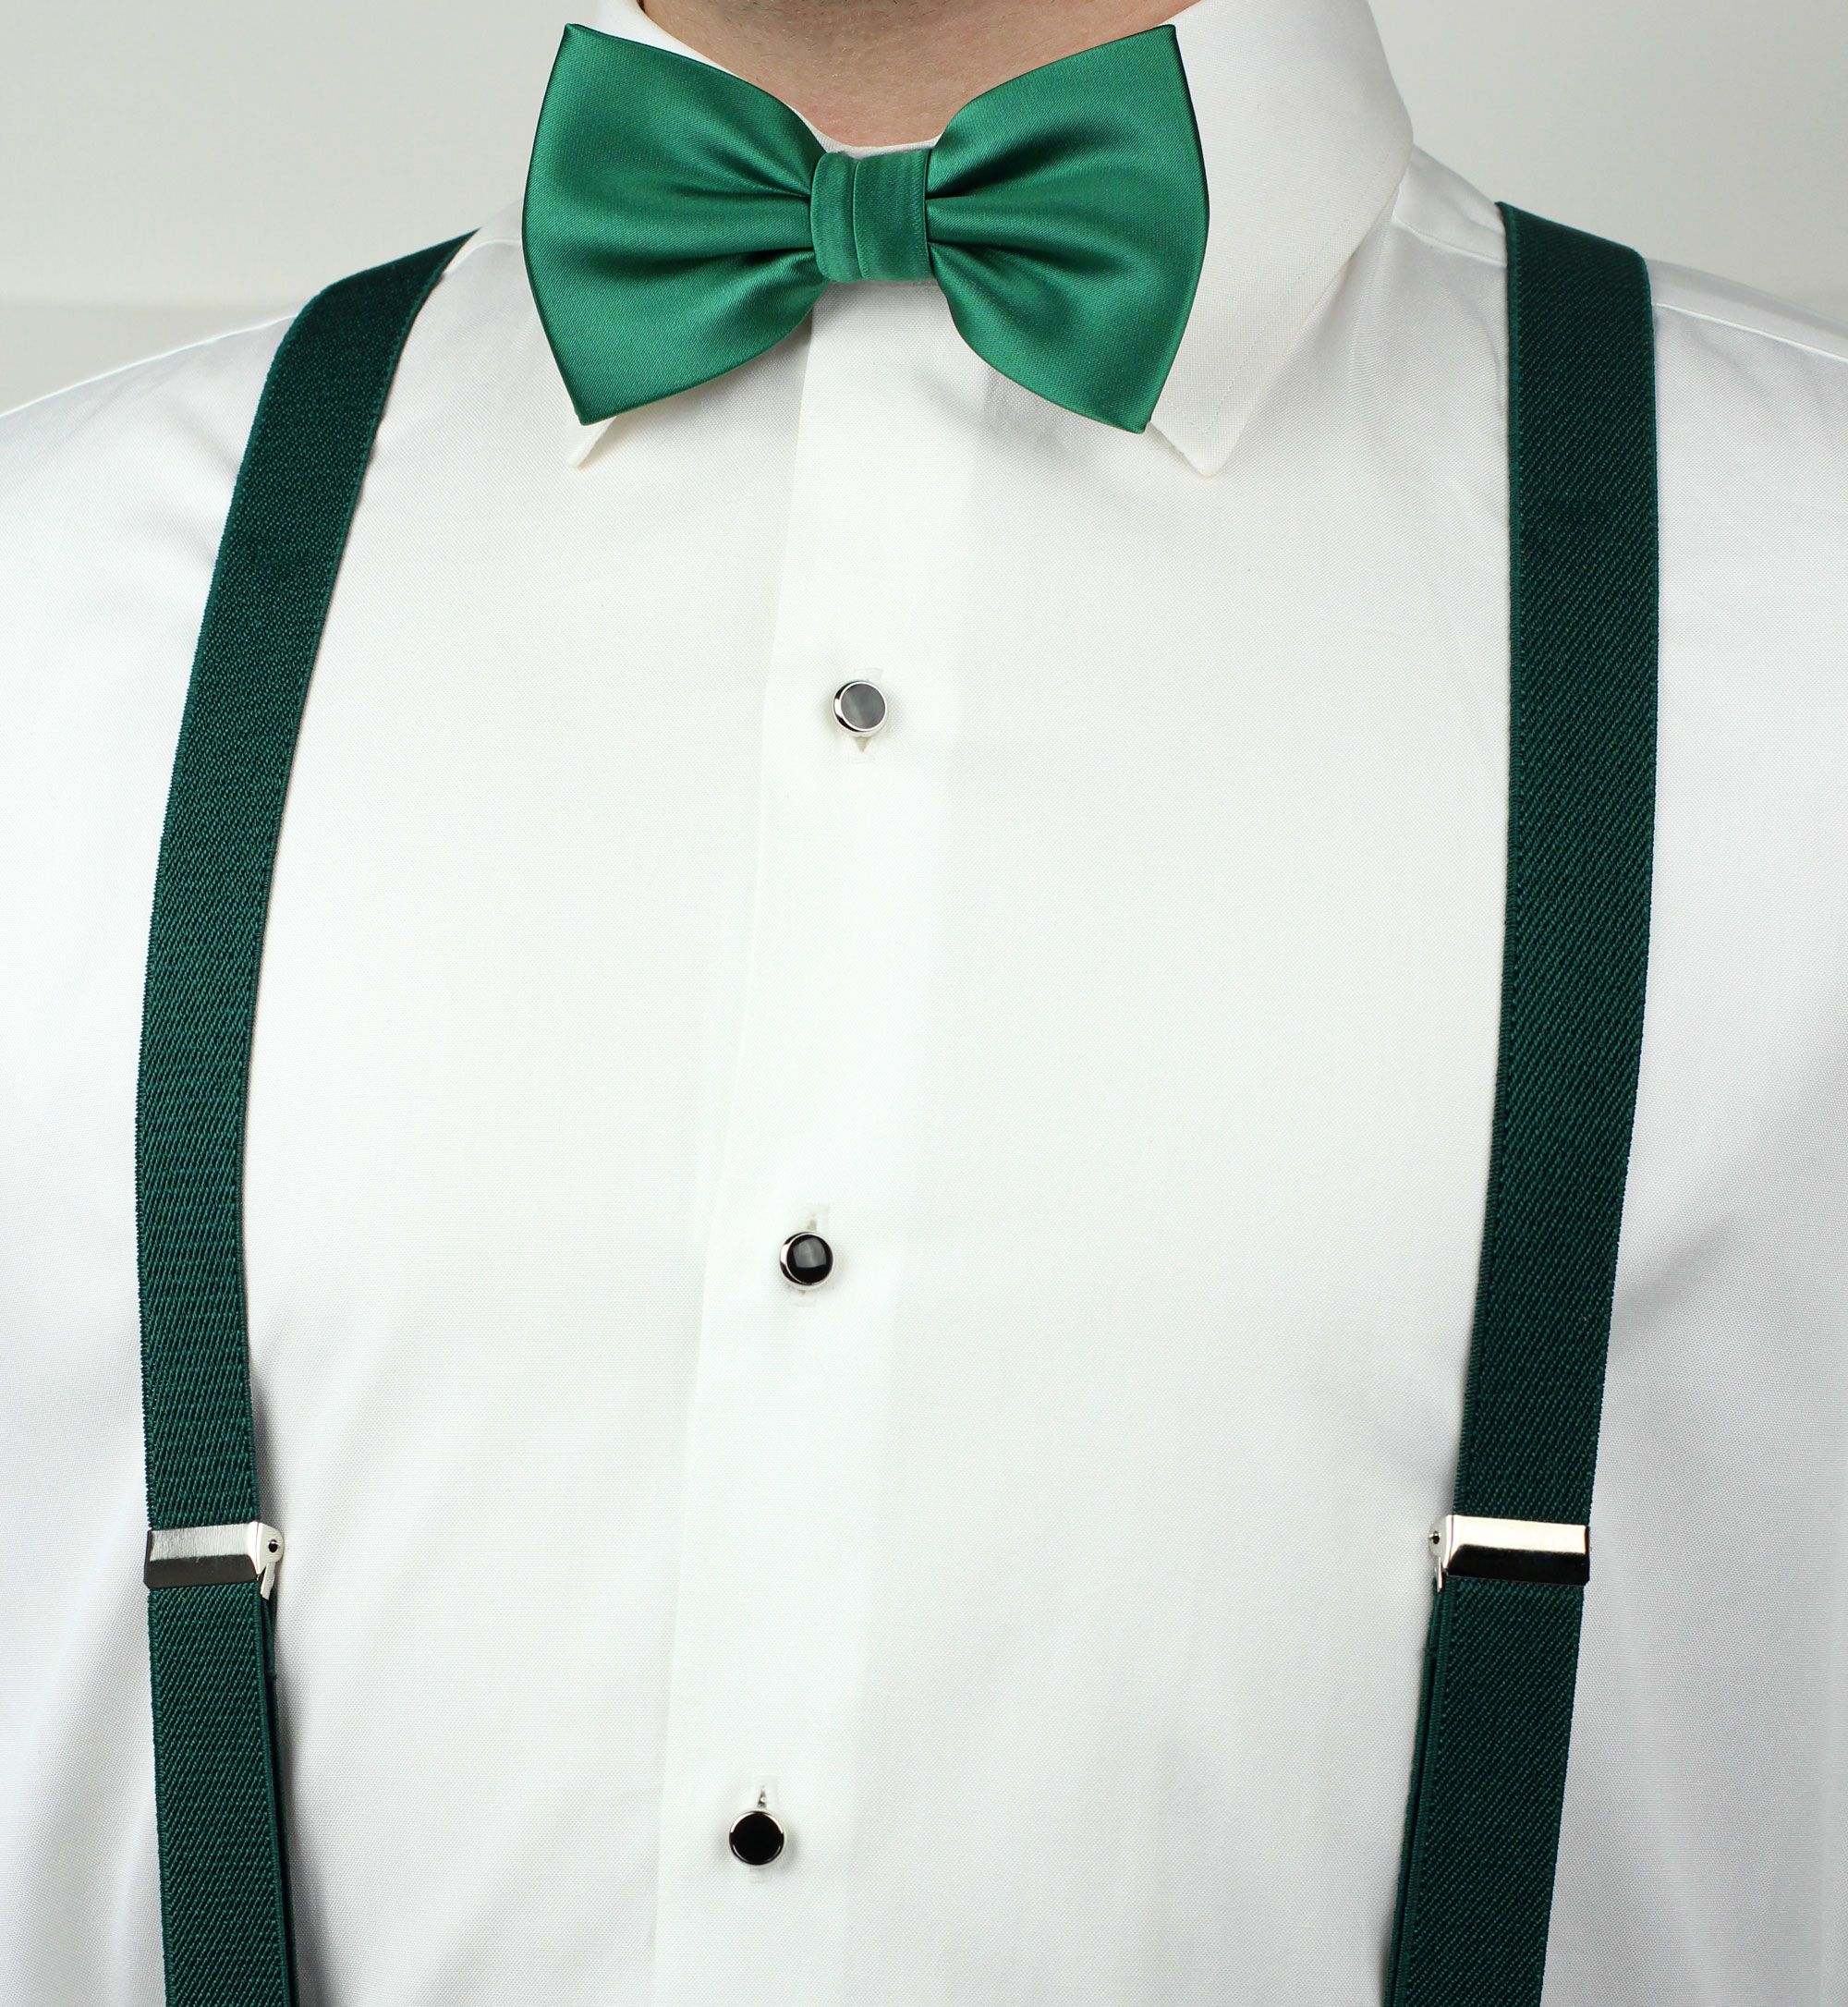 172a659fe78 Neckwear brand PUCCINI now also offers their best selling solid colored  neckties and bow ties in matching suspenders.